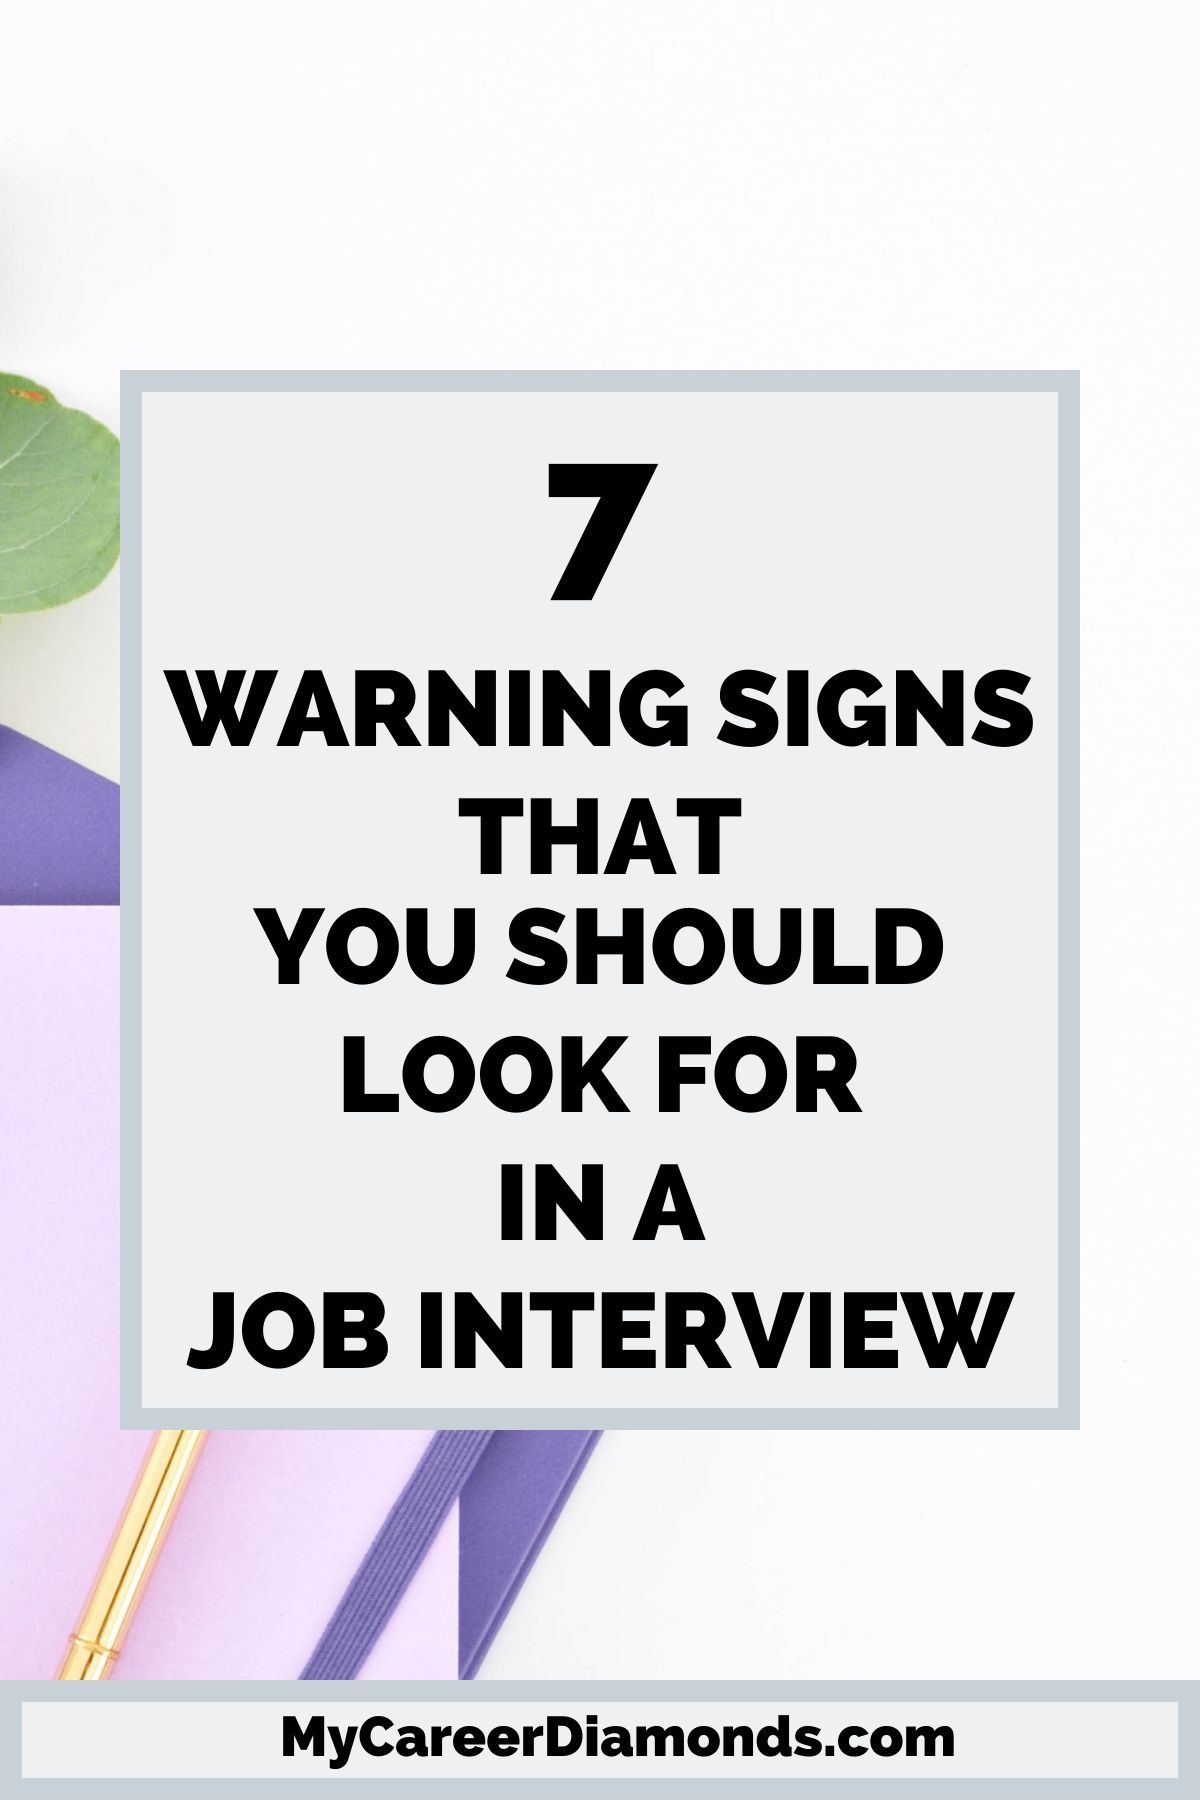 Are you preparing for a job interview? Click here to read 7 warning signs to look for